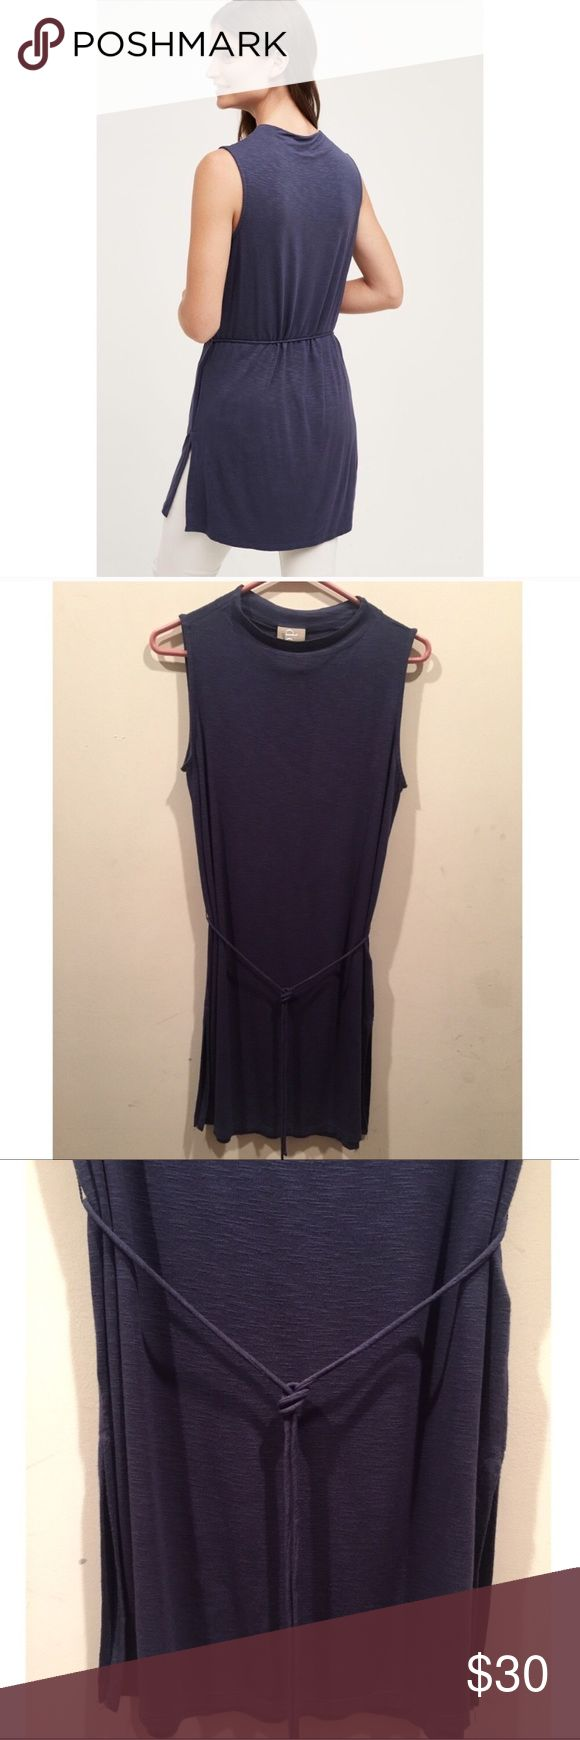 ☀️EUC Anthropologie Dolan Left Coast Tie Tunic Top Dolan Left Coast Collective by Anthropologie Fina Sleeveless Tie Tunic Top in navy, worn once & has no stains, holes, tears, or marks, size small. Can be worn as a dress or long tunic top! Anthropologie Tops Tunics